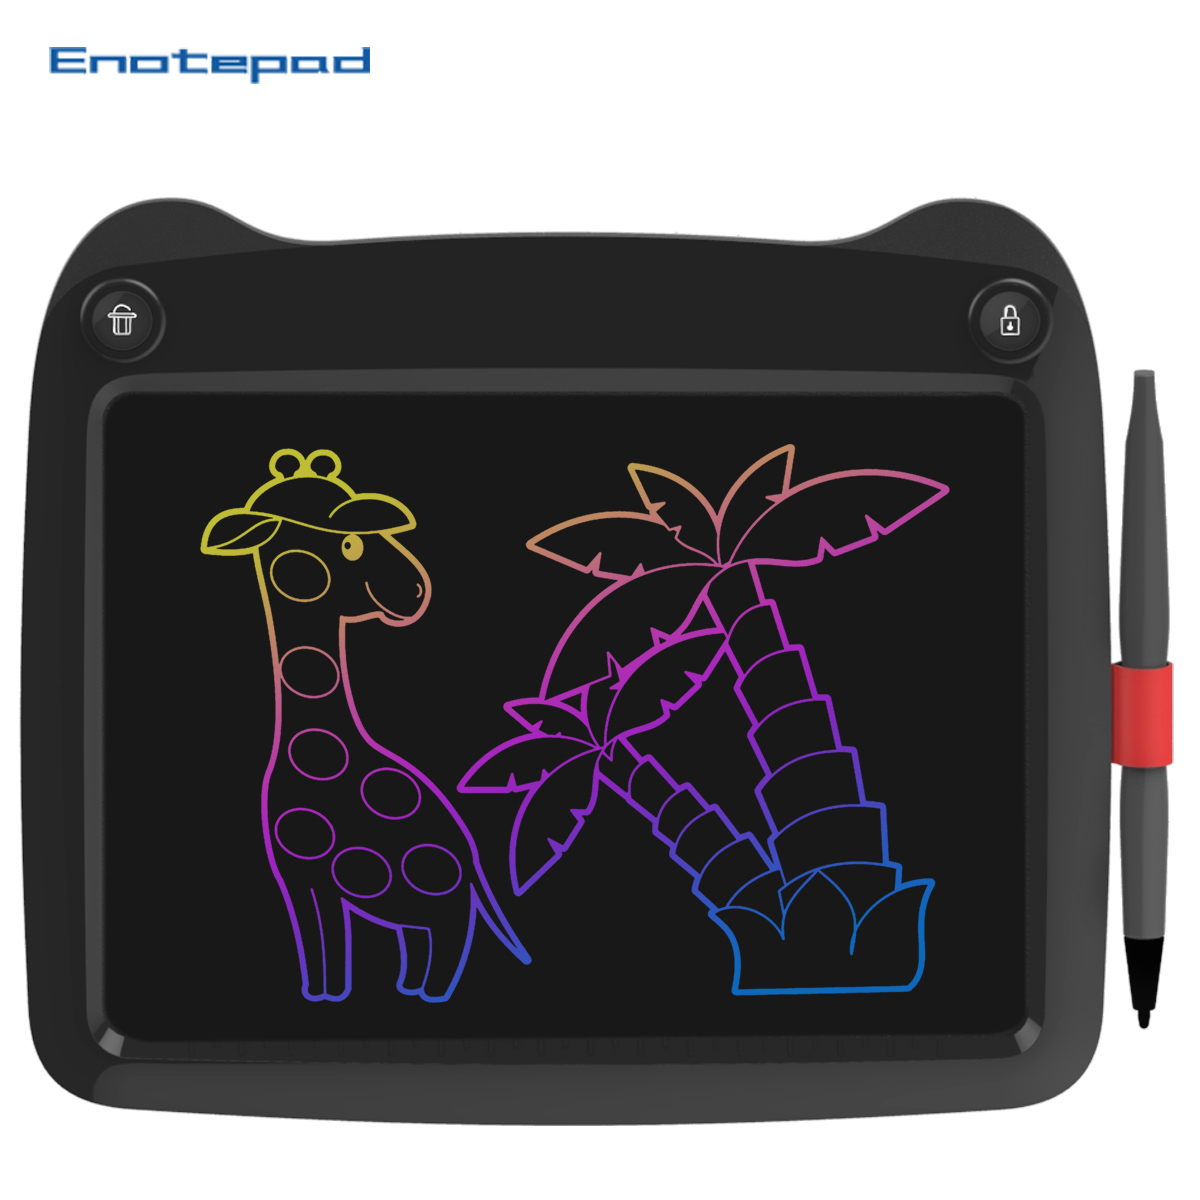 Enotepad 9 Inch Lcd Writing Portable Smart LCD Writing Tablet Electronic Handwriting Pad graphics tablet pen lcd eraser